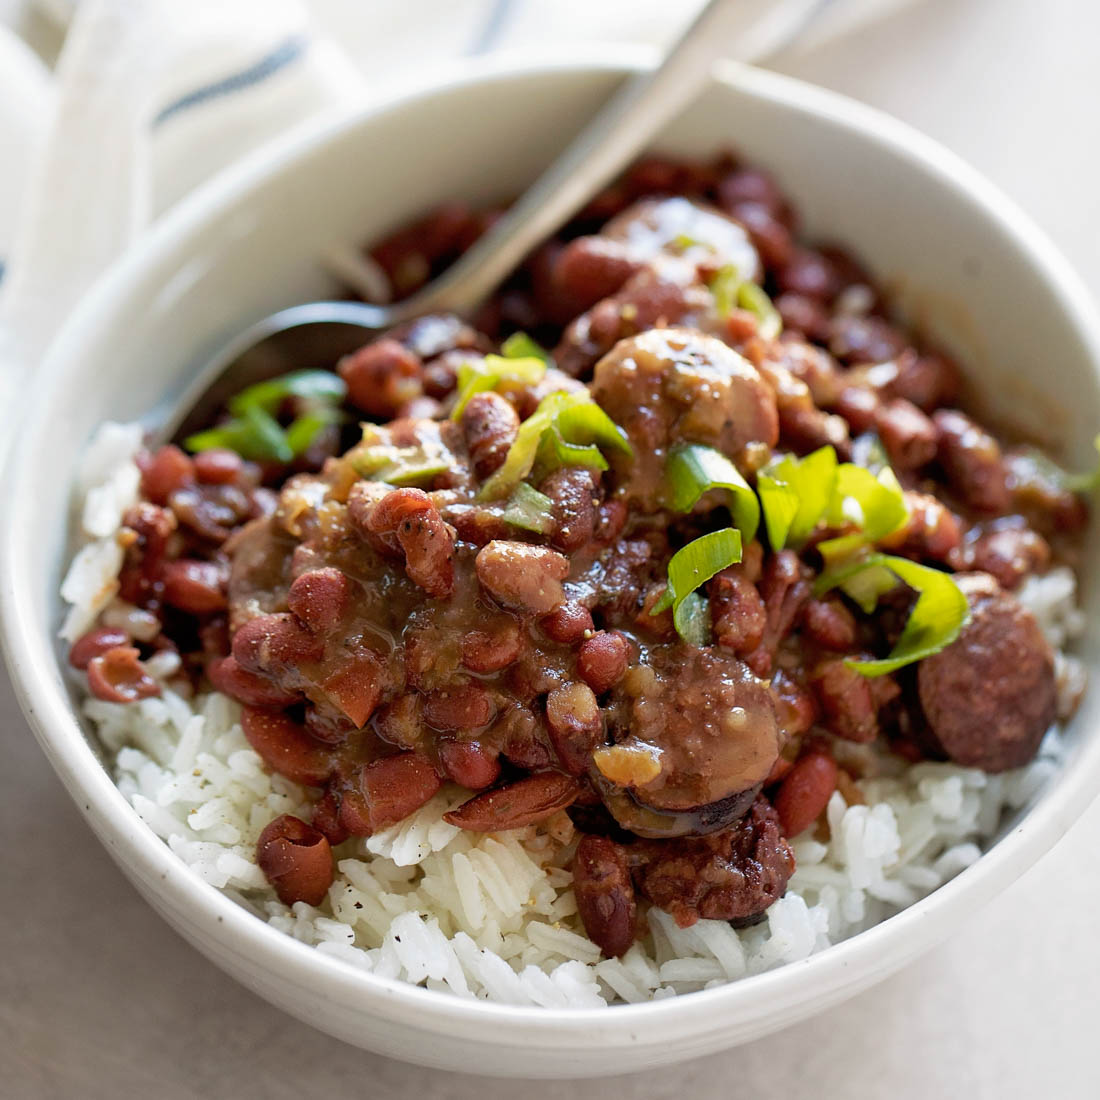 Red beans and rice in bowl with green onions